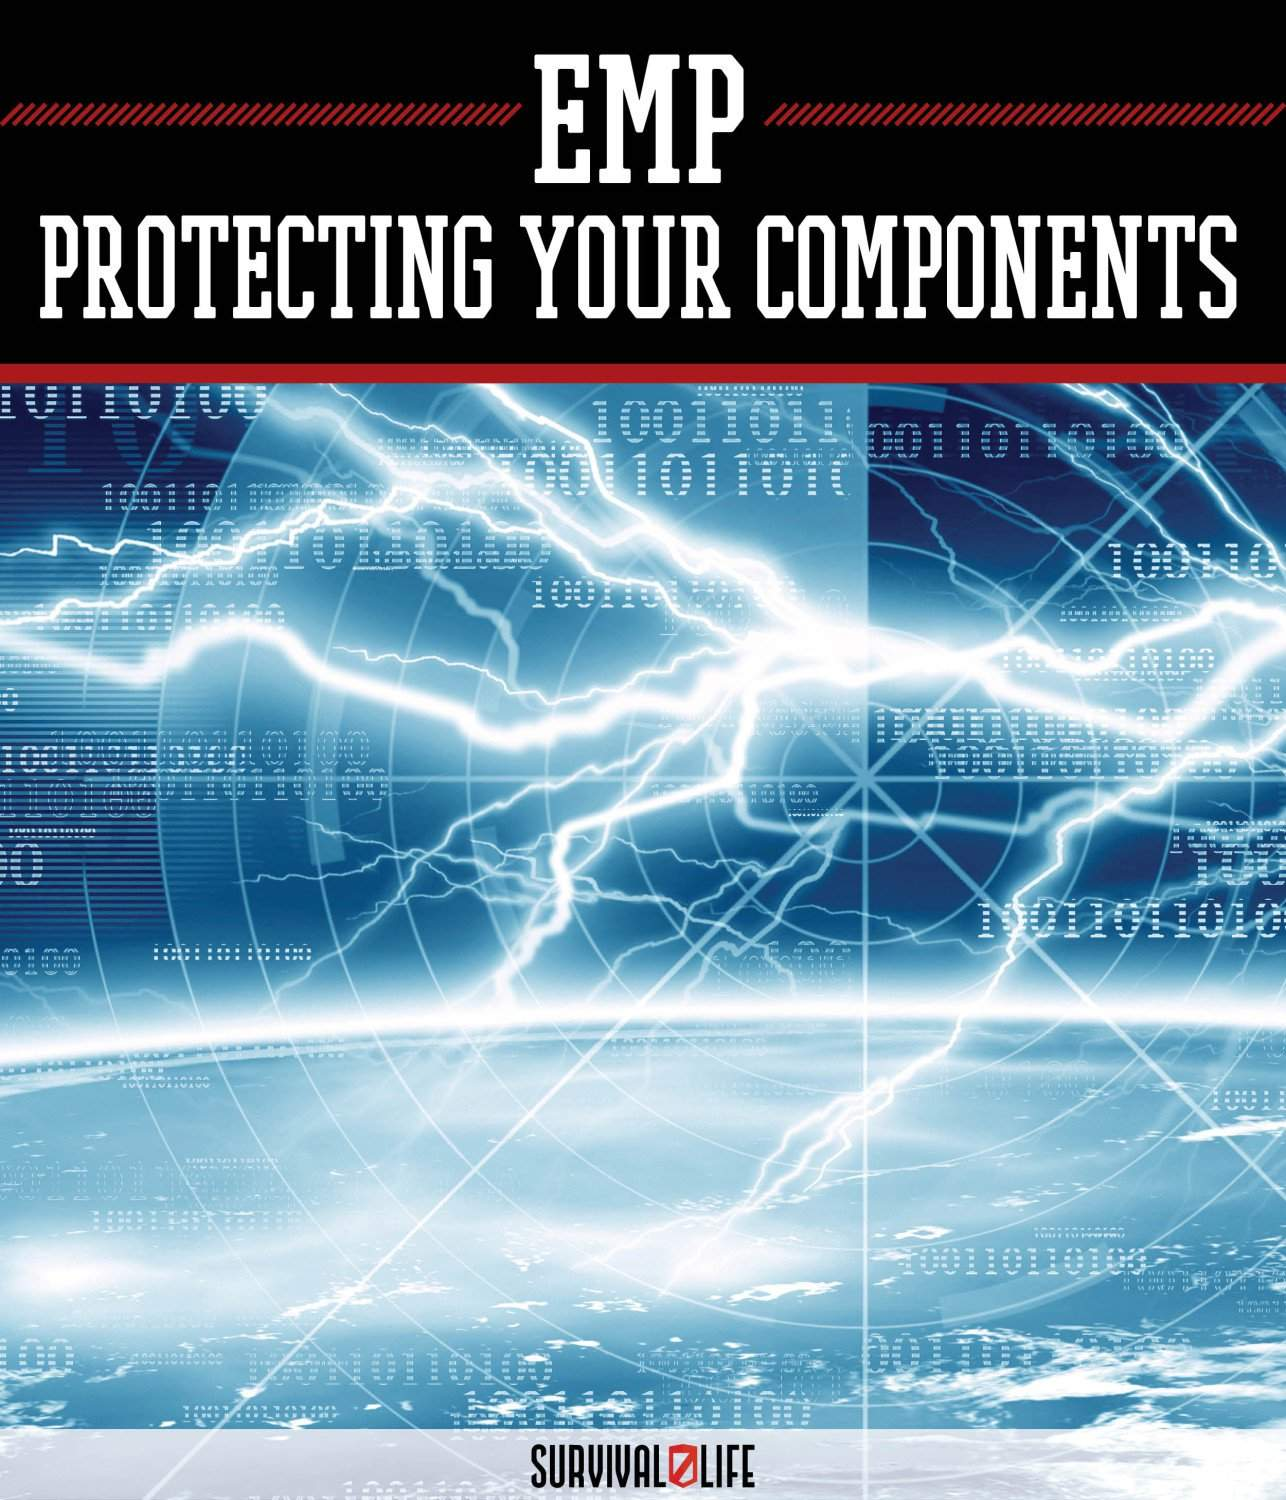 emp protecting your components